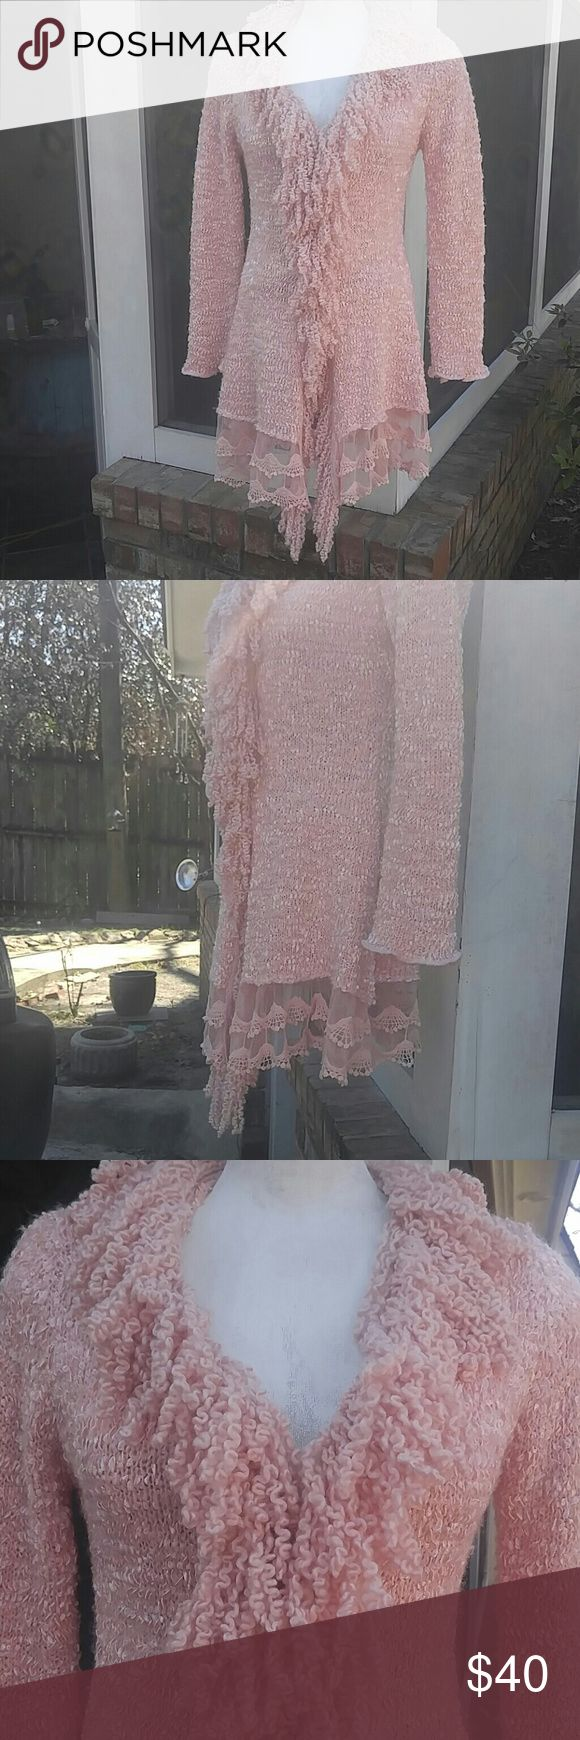 Lady's, Pink, Fringe and Lace Cardigan Beautiful, curly fringe cardigan/sweater, with lace trimmed hemline!!! Hook and loop fasteners down front. Has shimmering threading throughout to really make it stand out! Material: Knit is 37% Acrylic, 33% Polyester, 30% Wool. Trim is 100% Polyester.  Hand wash only. Size medium. Excellent condition! No holes or stains!! SIONI STUDIO Sweaters Cardigans